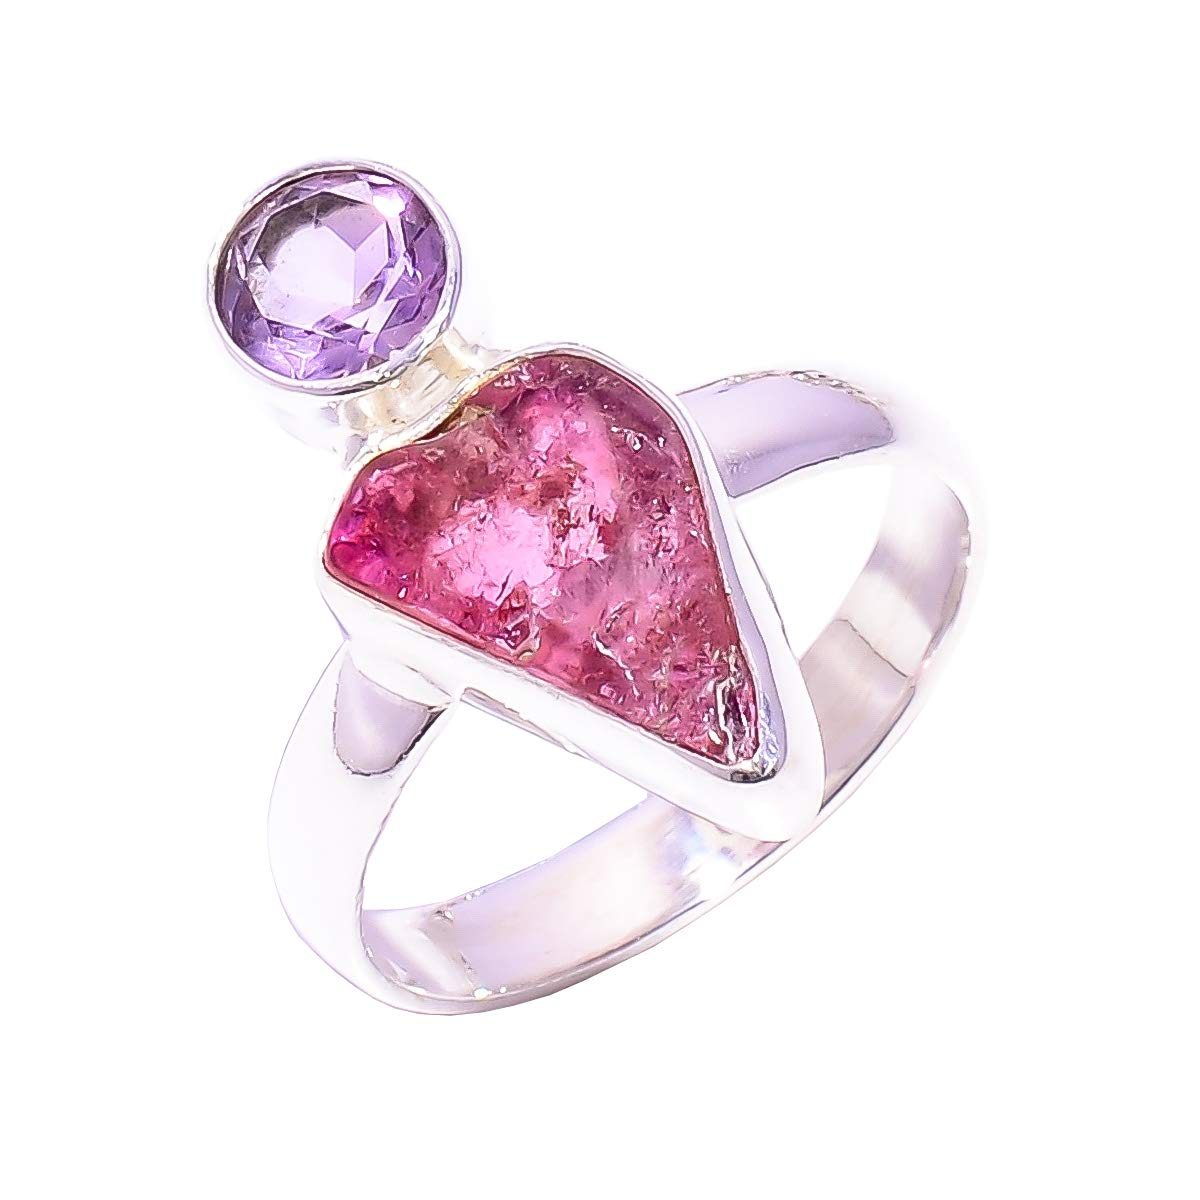 Natural Amethyst Gemstone Rings 925 Sterling Silver Handmade Adjustable-Angel/'s Wing Ring-Gift for her,Valentine gift,Anniversary ring